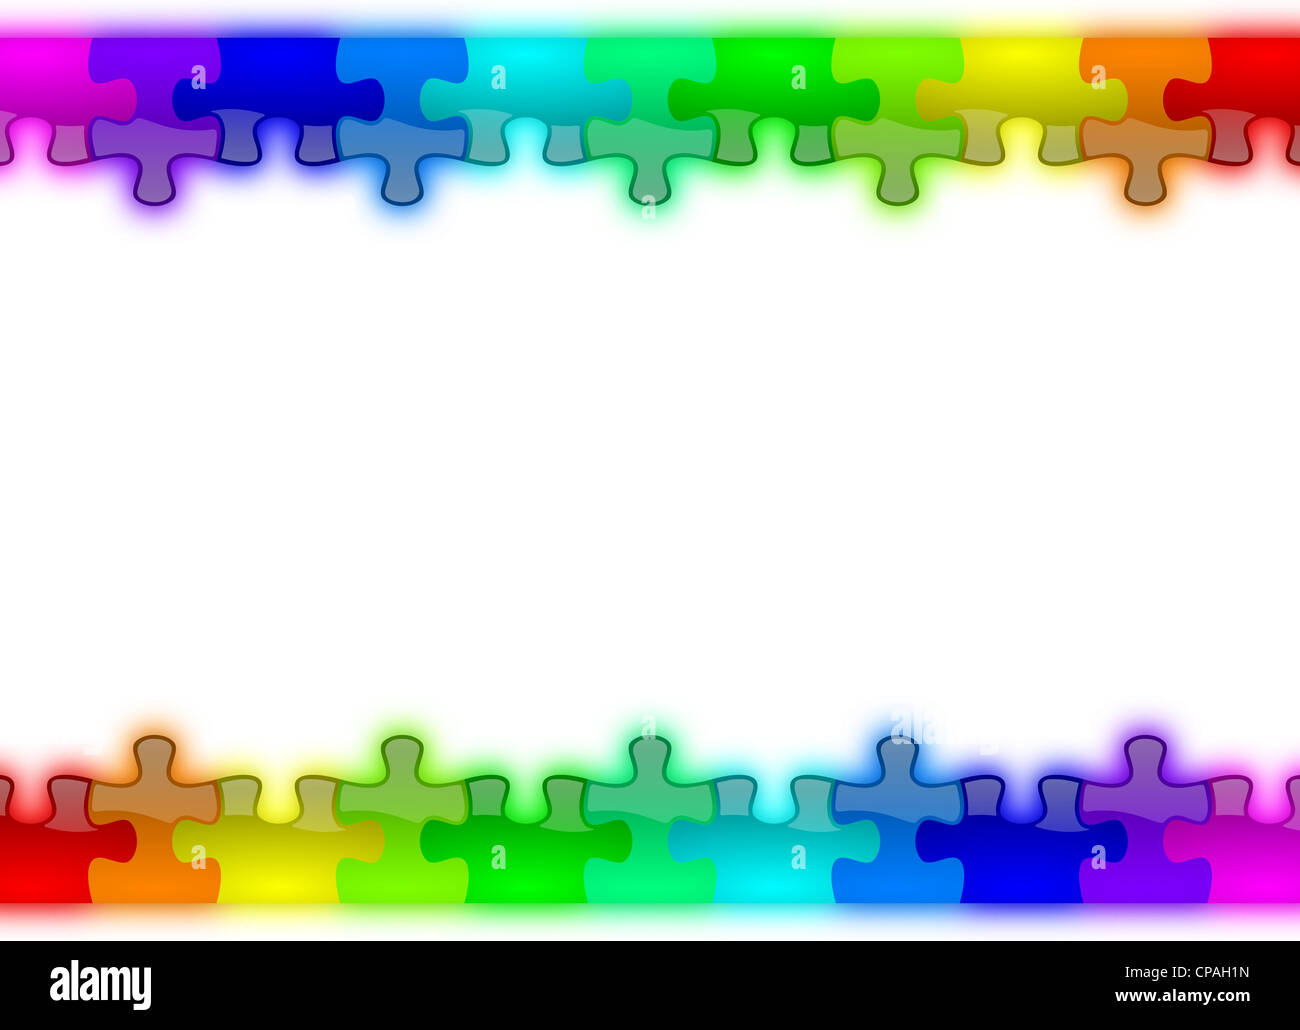 Color rainbow puzzle pieces background - Stock Image